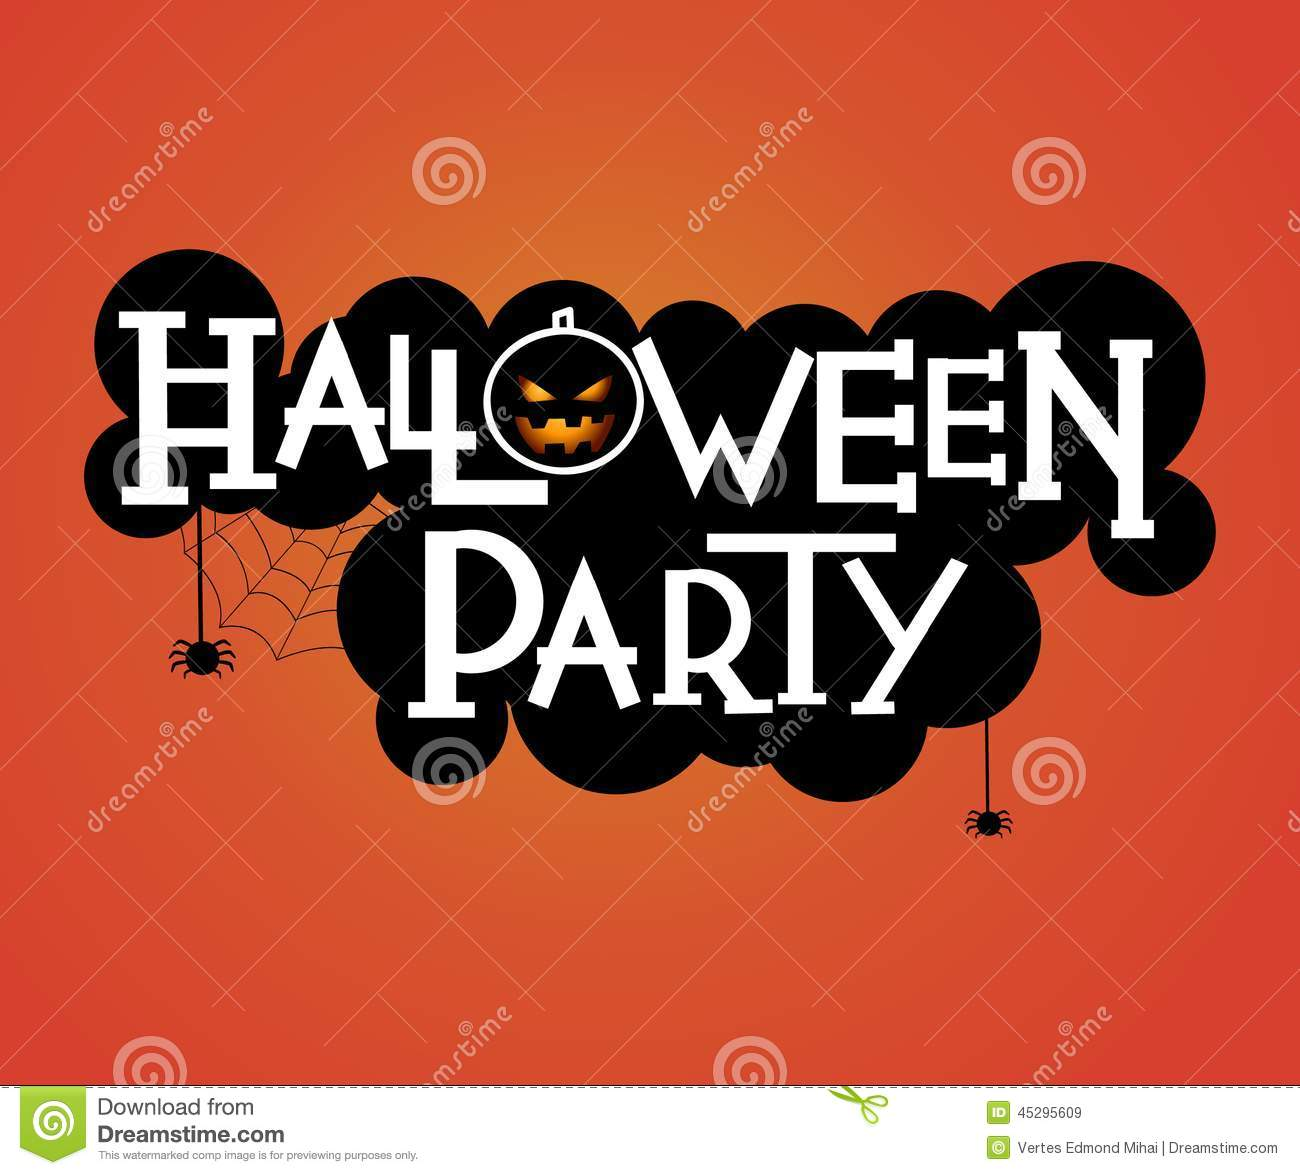 halloween party text design stock vector illustration of artistic